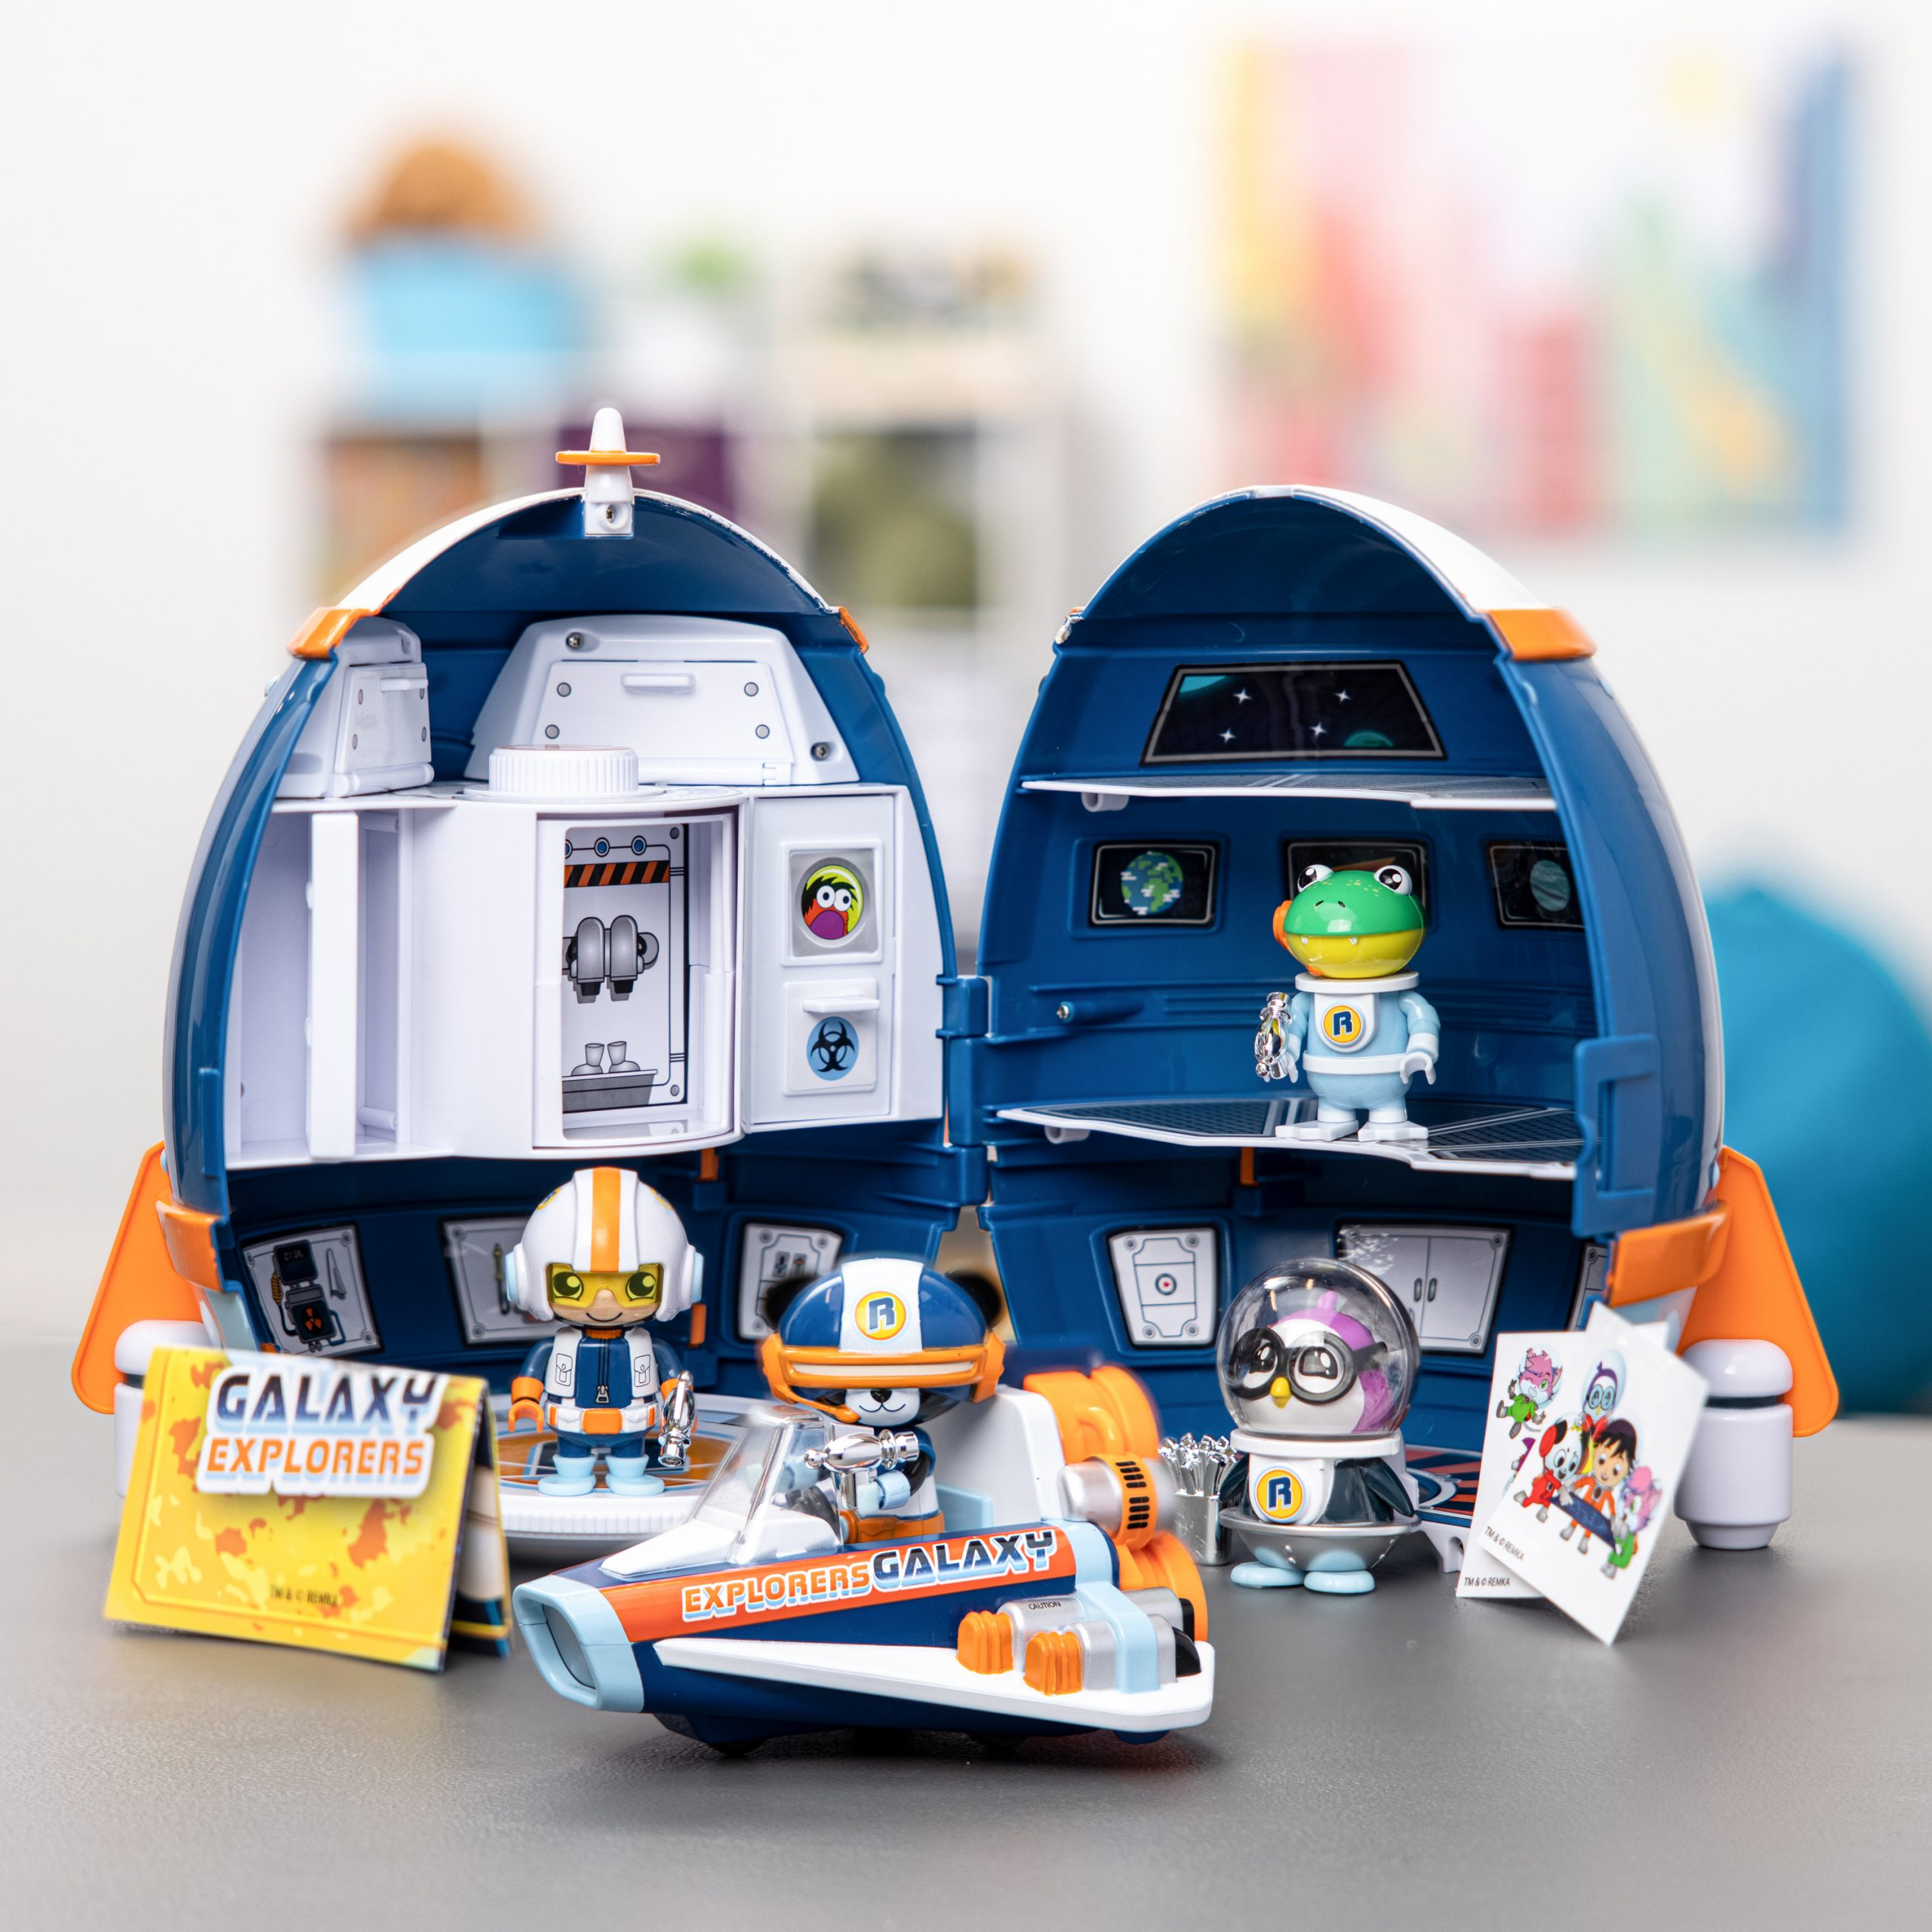 Ryans World Galaxy Explorers Mystery Adventure Playset, ryan blind bags, kids toys, 2021 toy gift guide, holiday toys, sweet suite at home, ryans toy review